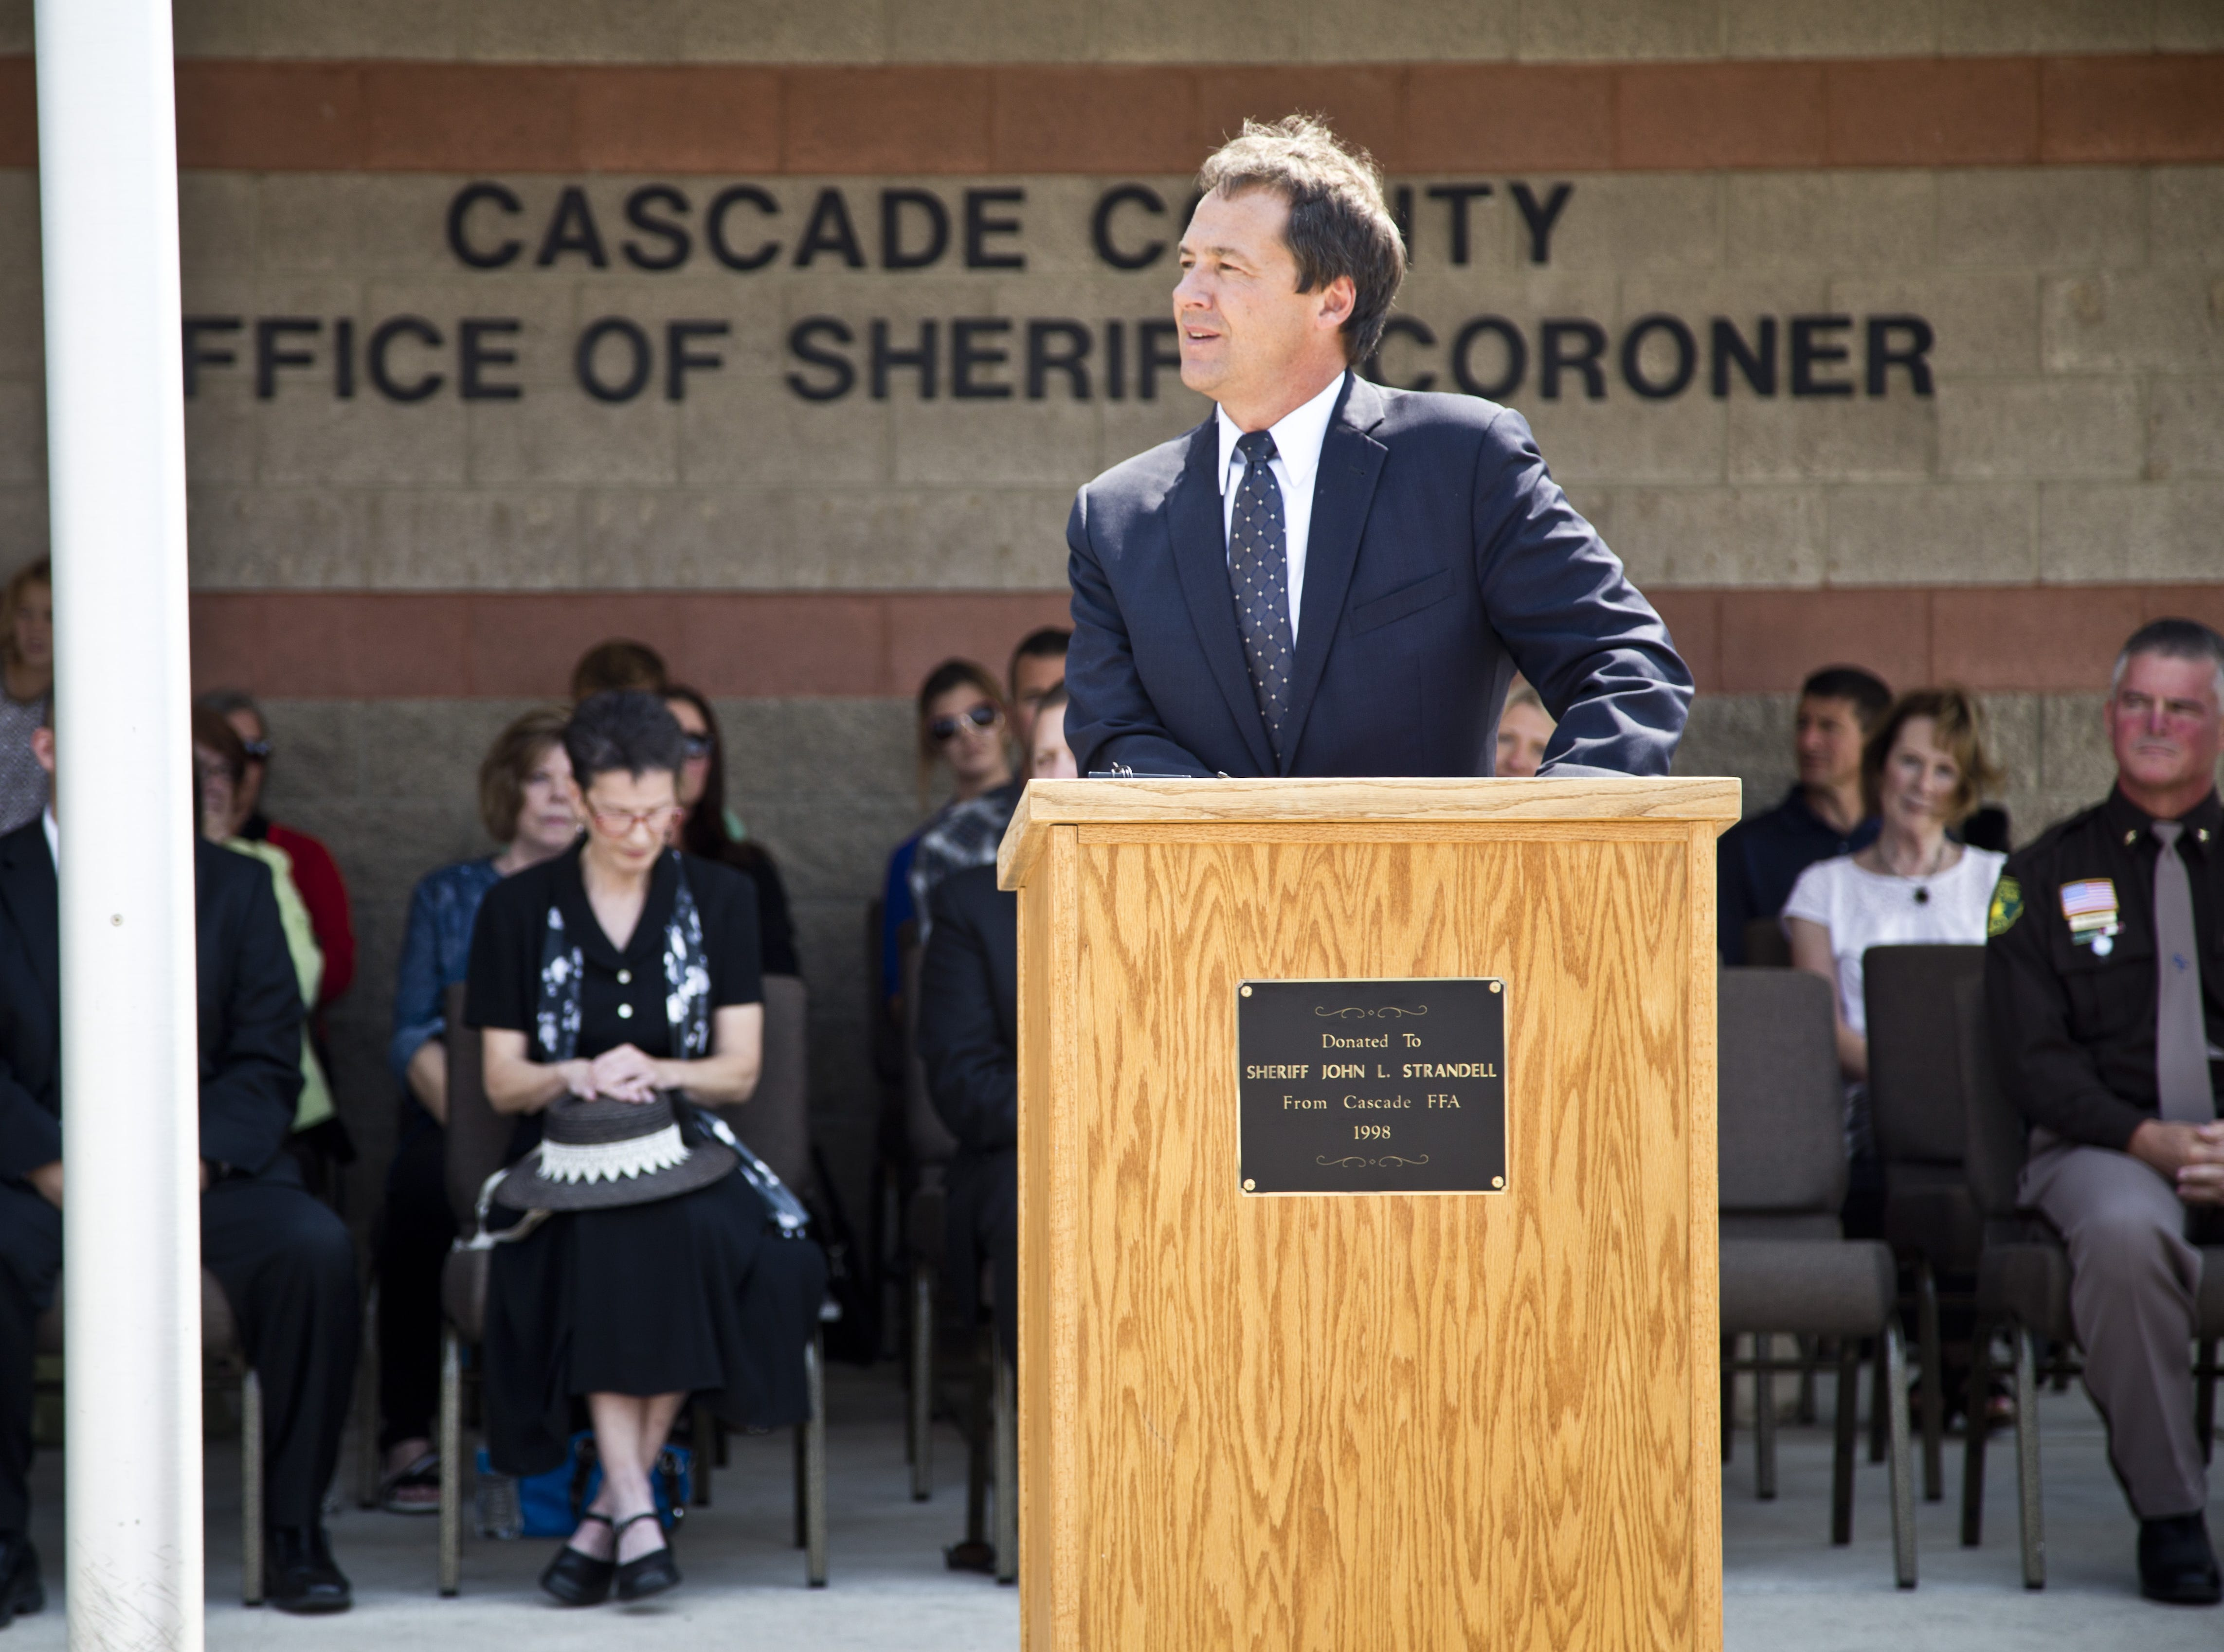 Tribune photo/Annisa Keith Gov. Steve Bullock speaks during the Joseph Dunn highway dedication ceremony Wednesday.  Bullock faced away from the crowd during his speech to make condolences to Dunn?s family. Gov. Steve Bullock speaks during the Joseph Dunn highway dedication ceremony on Aug 19 at the Cascade County Sheriff's Office. Bullock faced away from the crowd during his speech to make condolences to Dunn's family. Tribune photo/Annisa Keith